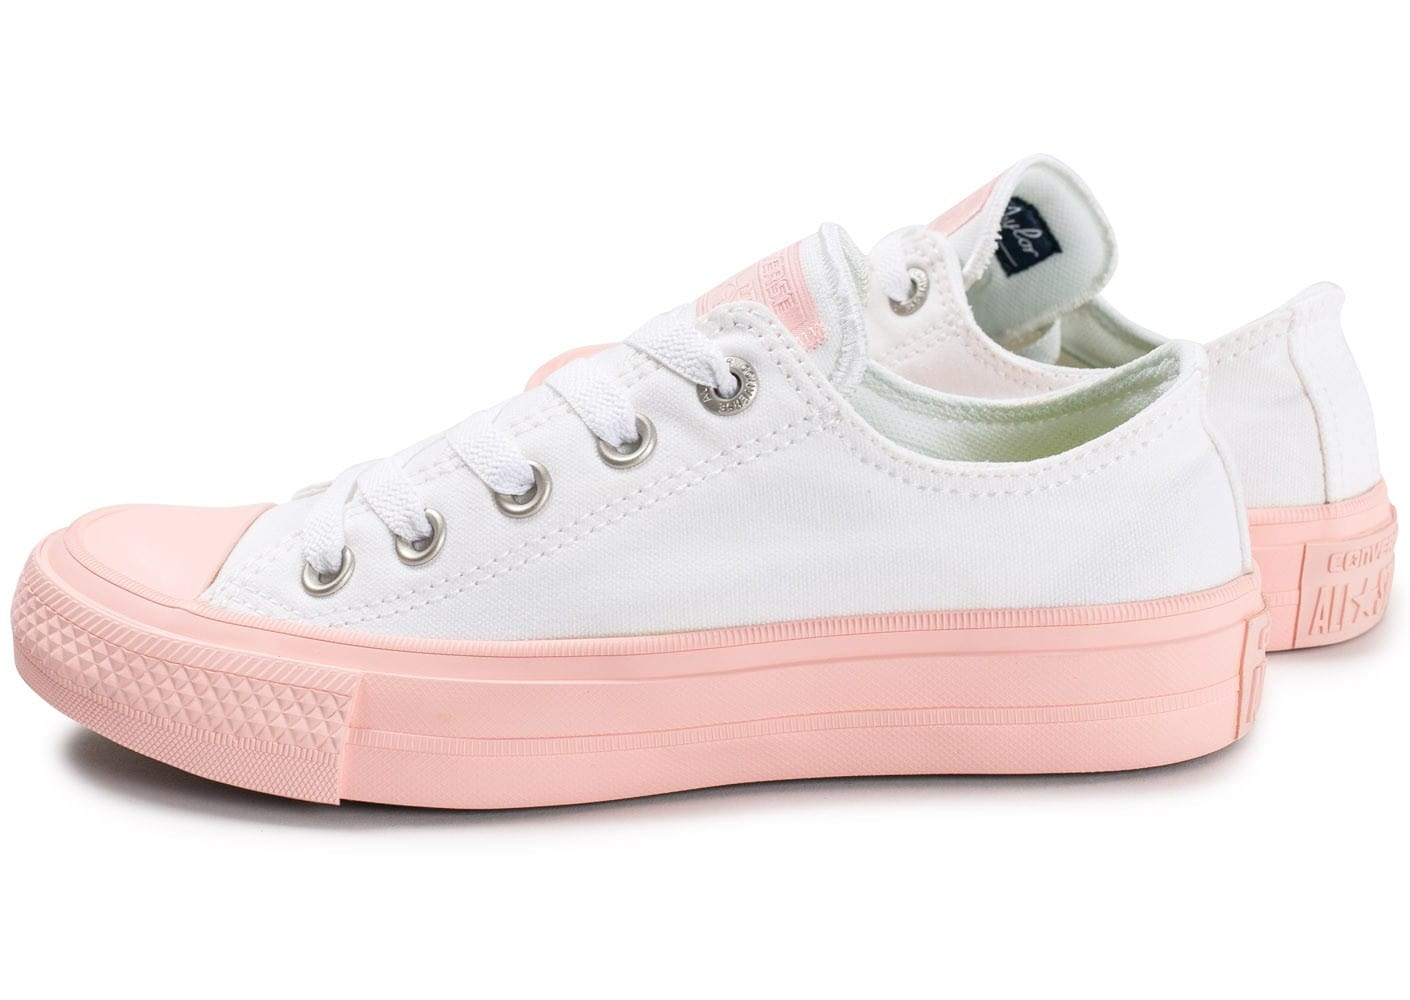 Converse Chuck Taylor All Star 2 OX W blanche et rose ...